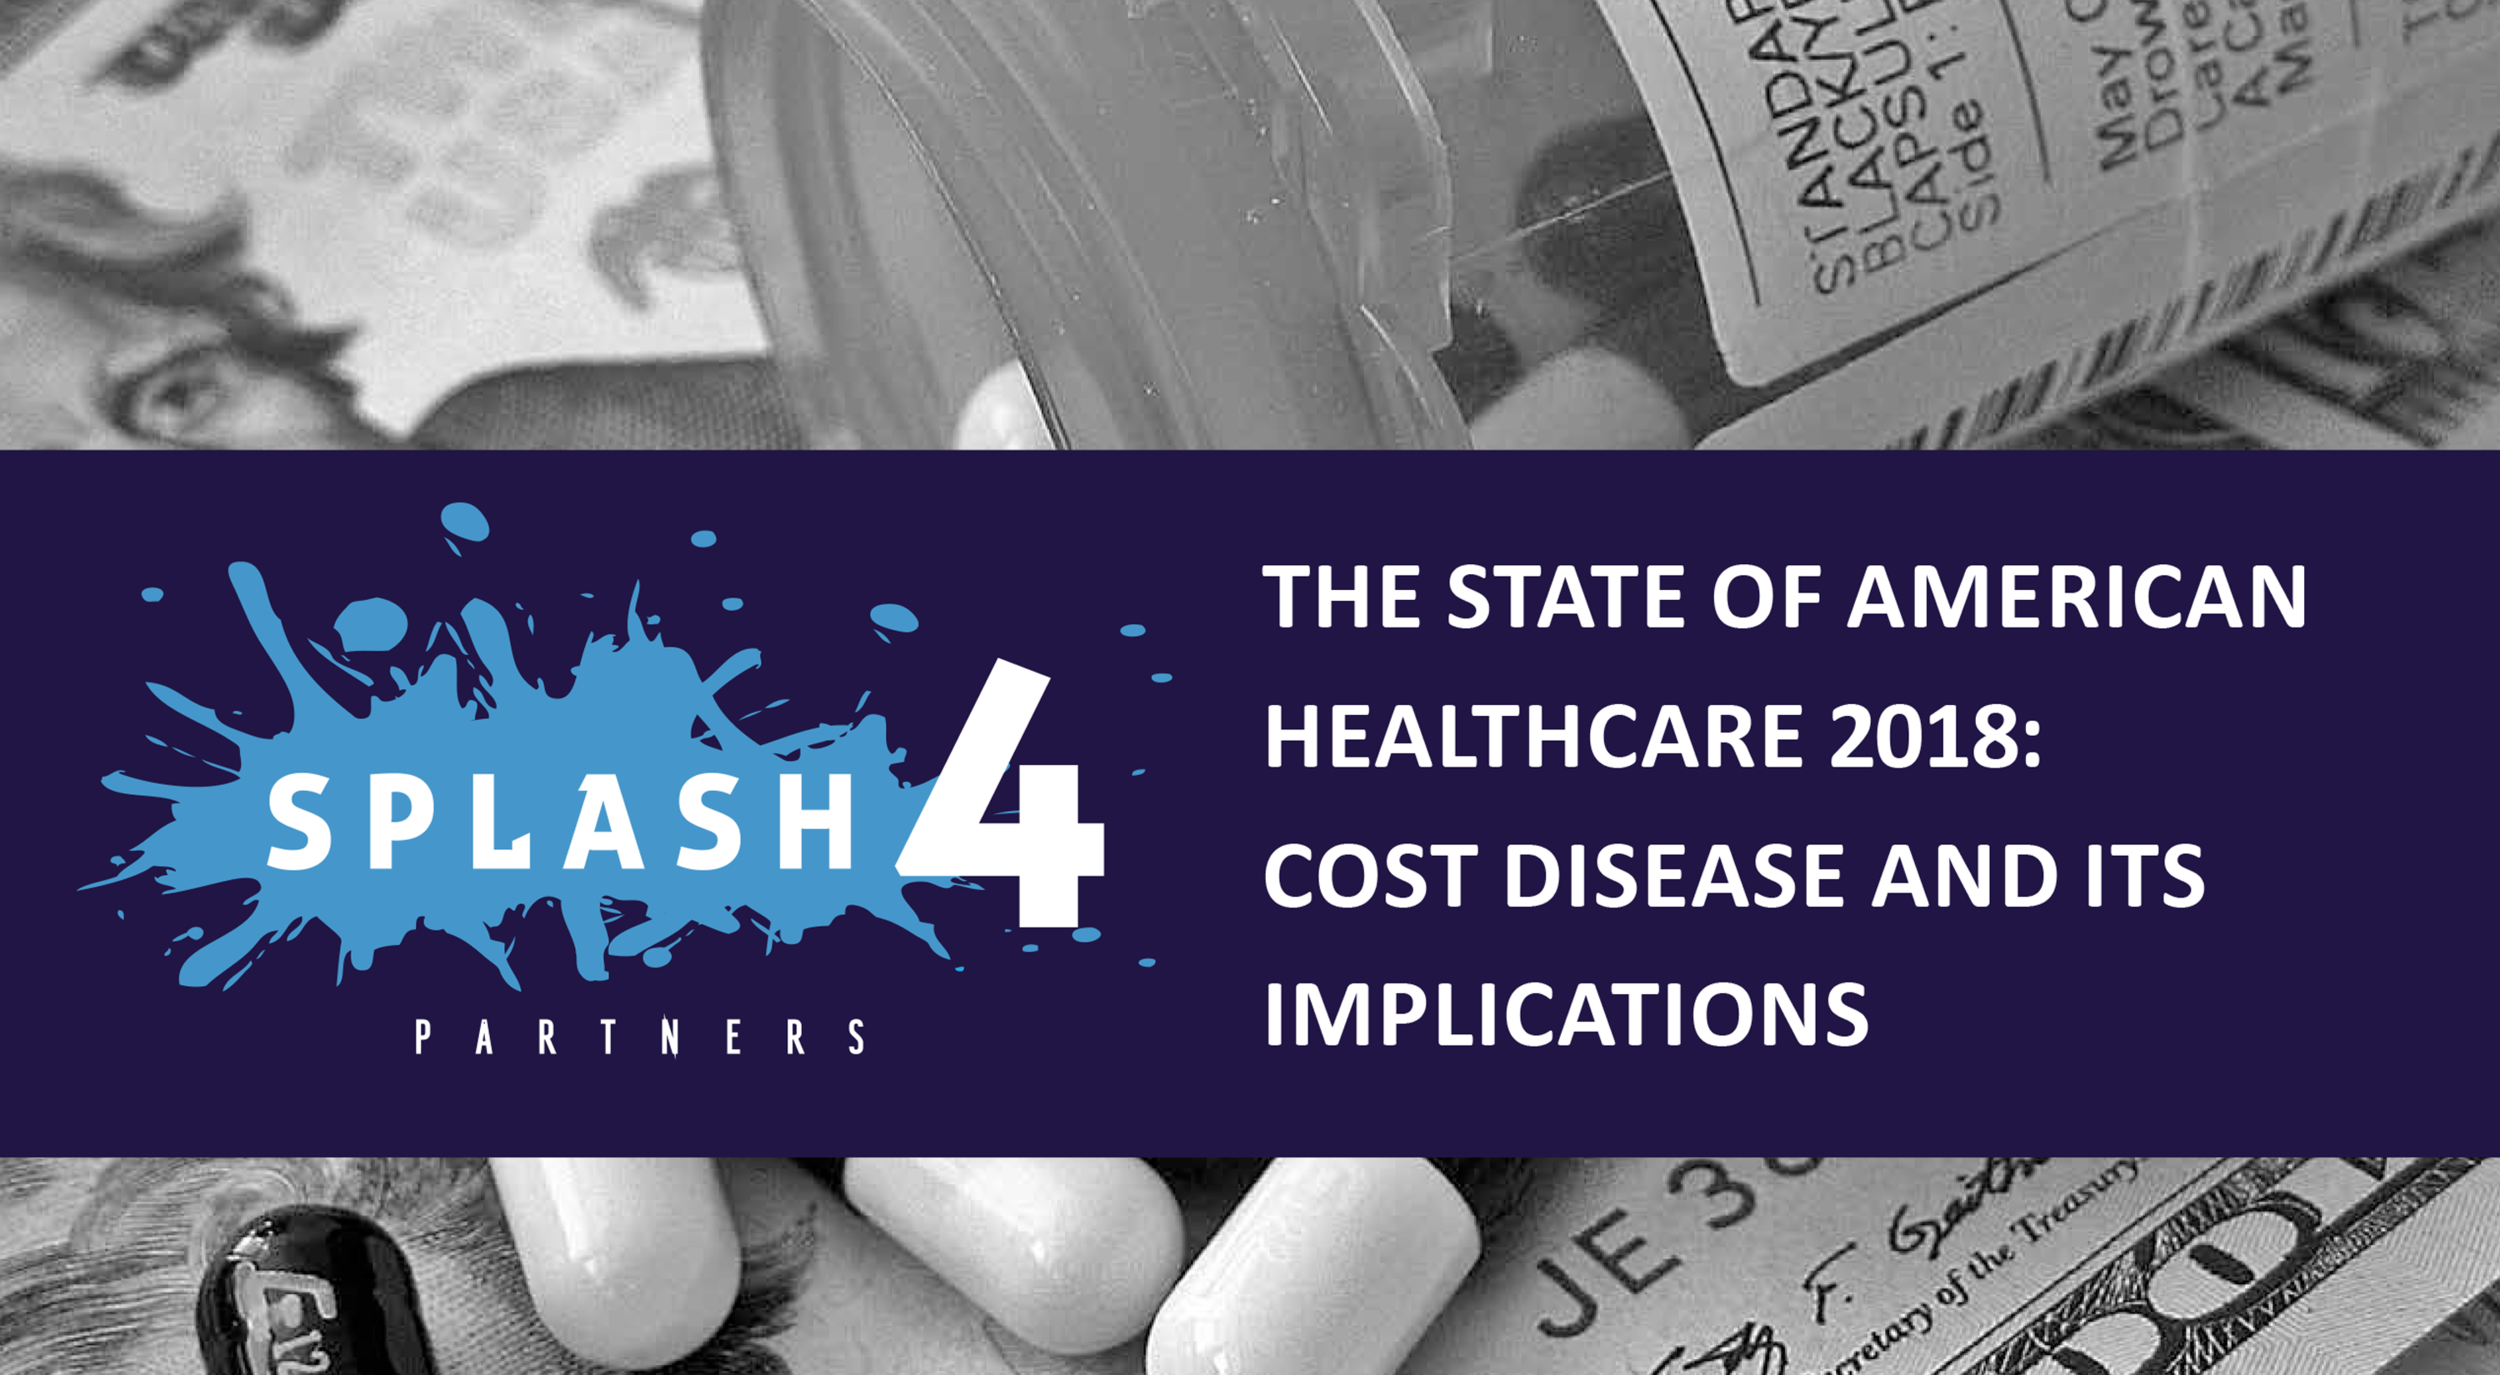 Splash 4 Partners-2018 The State of American Healthcare-Cost Disease-1.png